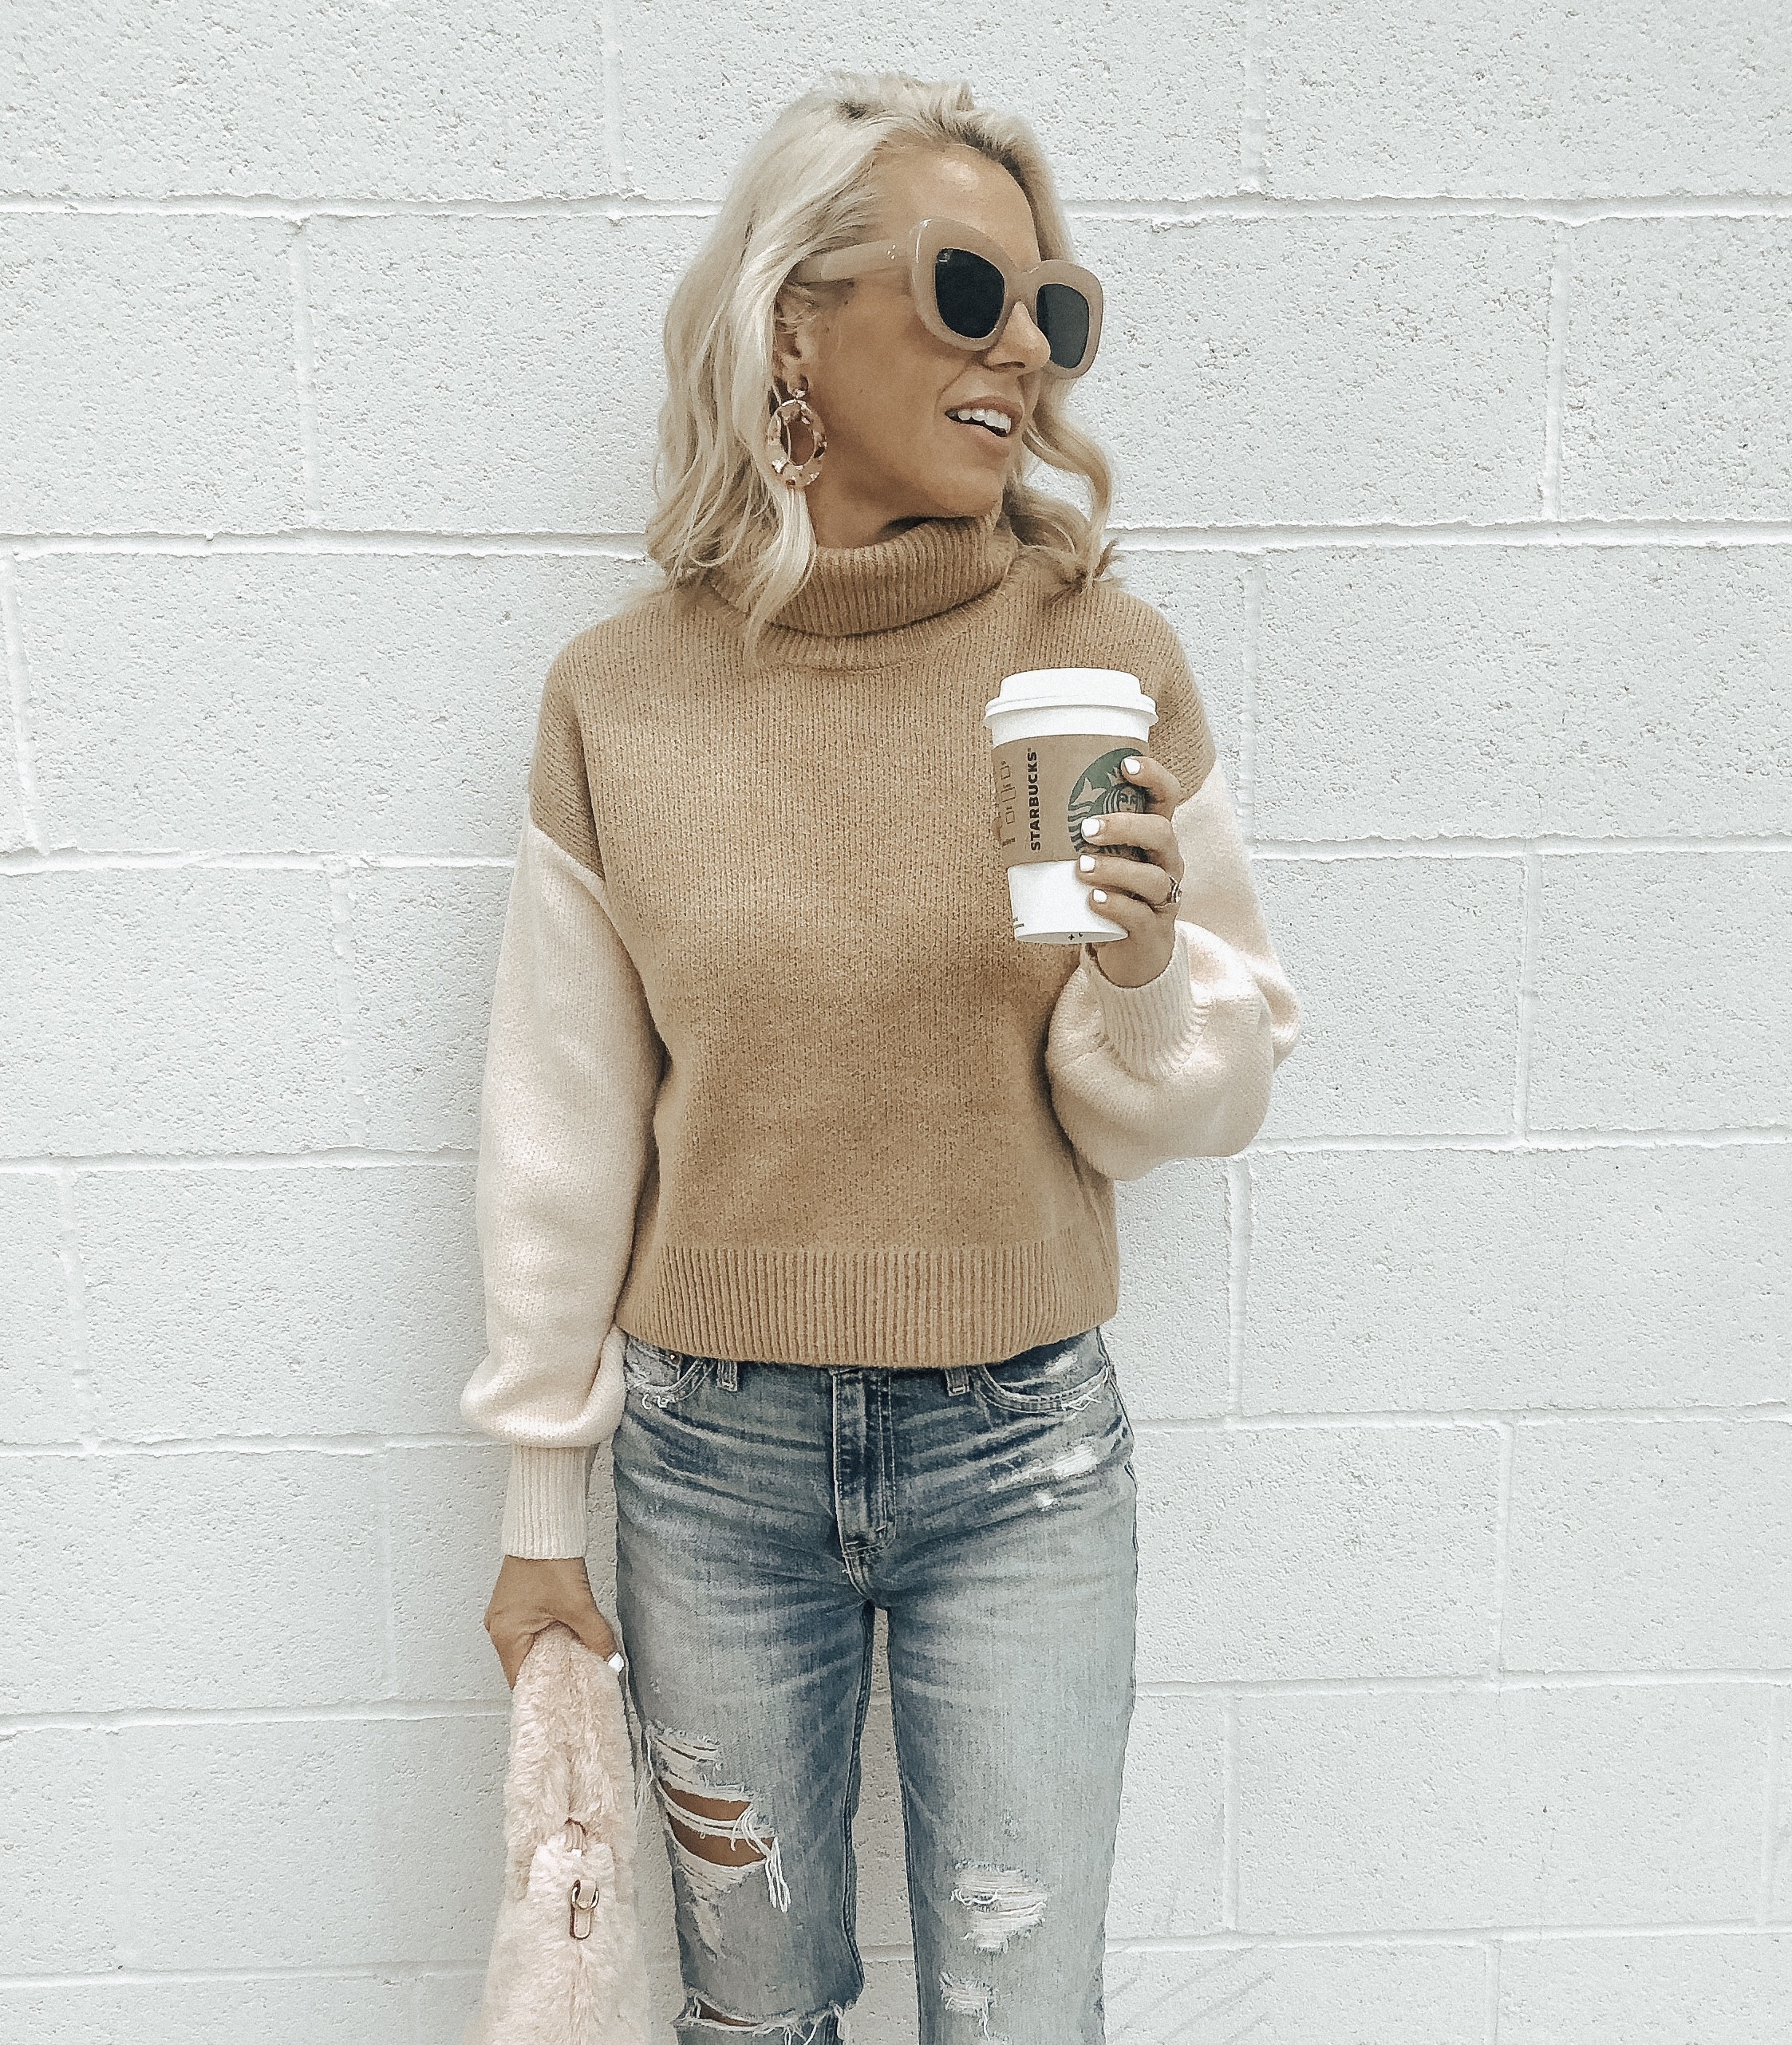 COZY SWEATERS UNDER $35- Jaclyn De Leon Style + casual sweater + chevron print + fall fashion + #sweaterweather + affordable fashion + winter style + casual street style + denim + mom style + color block + faux fur handbag + retro style + oversized sunglasses + forever 21 + mommy and me + kid style